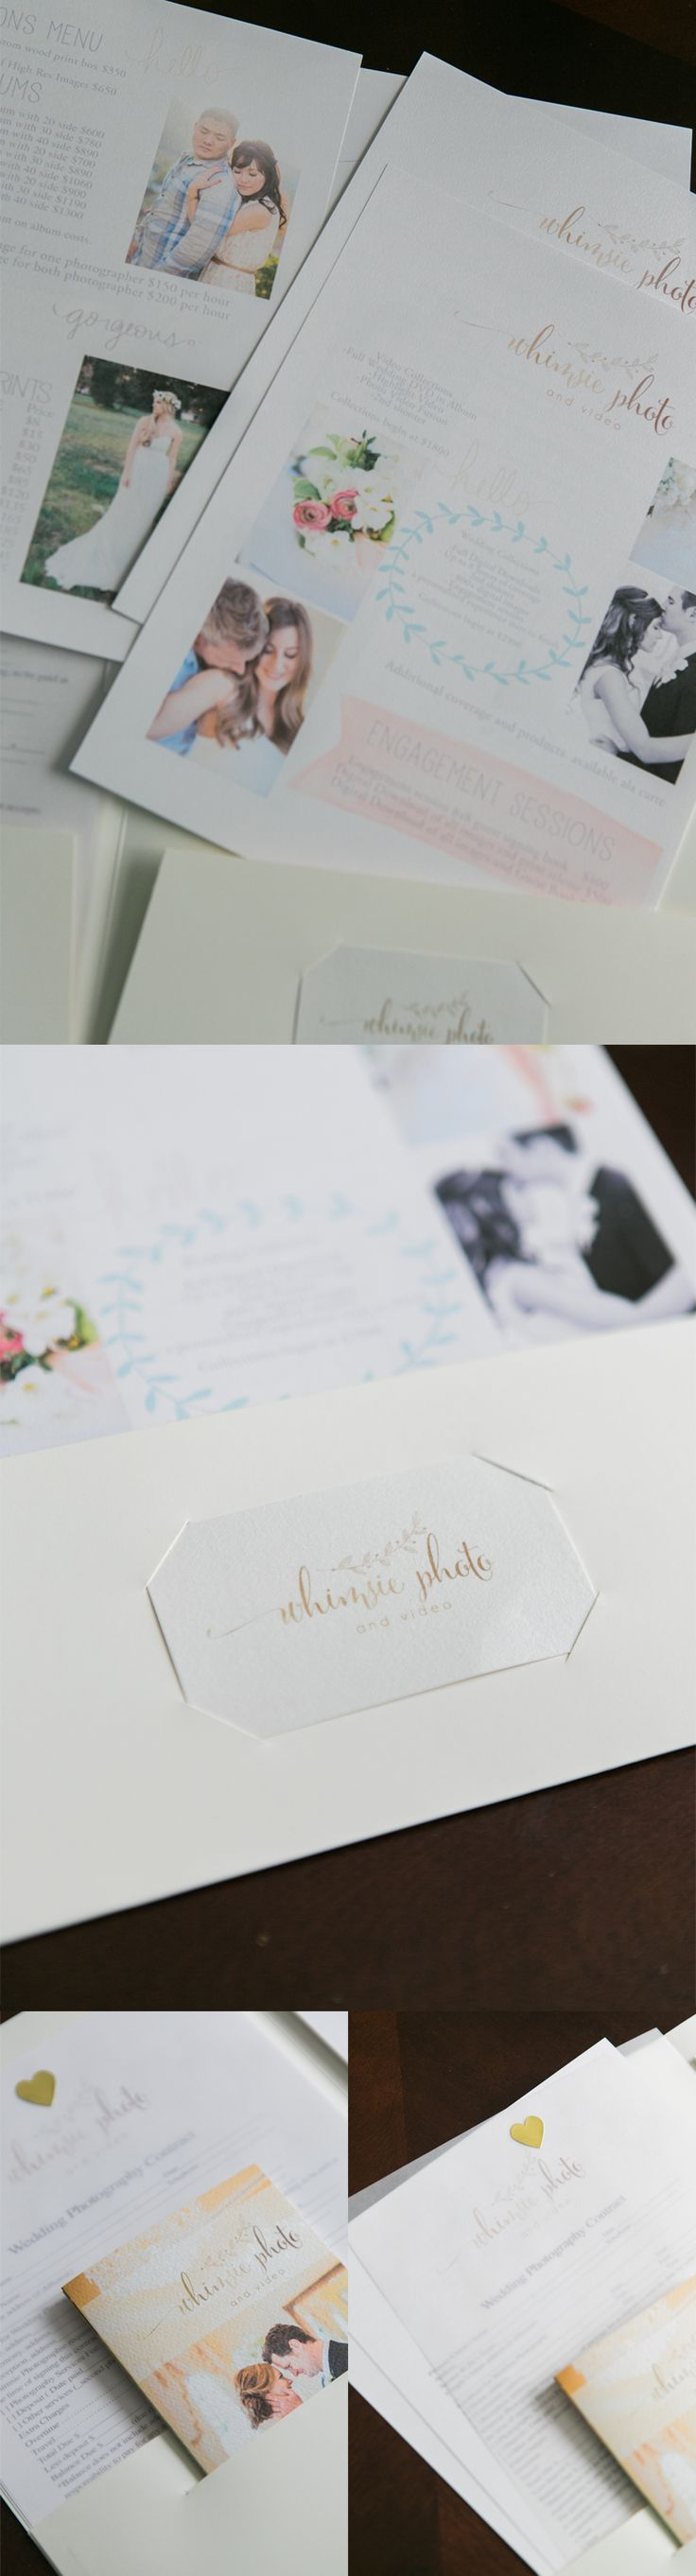 High end wedding photography wedding packet design with wedding contract and timeline